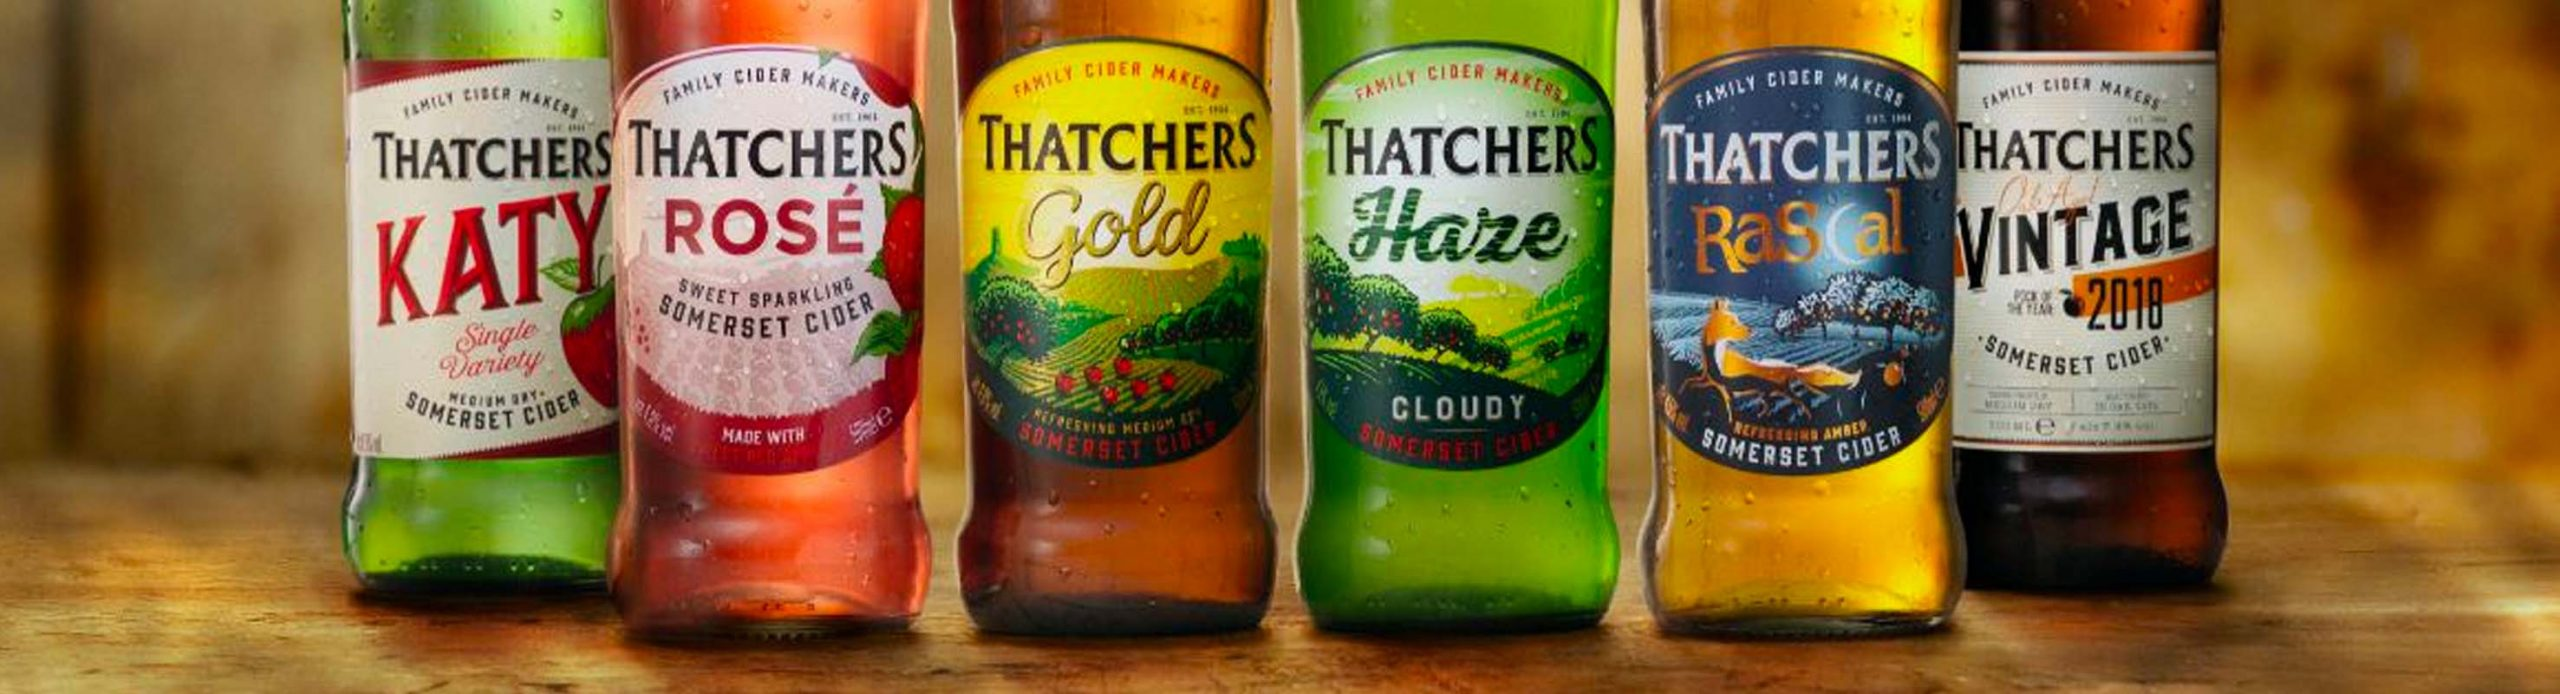 Thatchers mobile